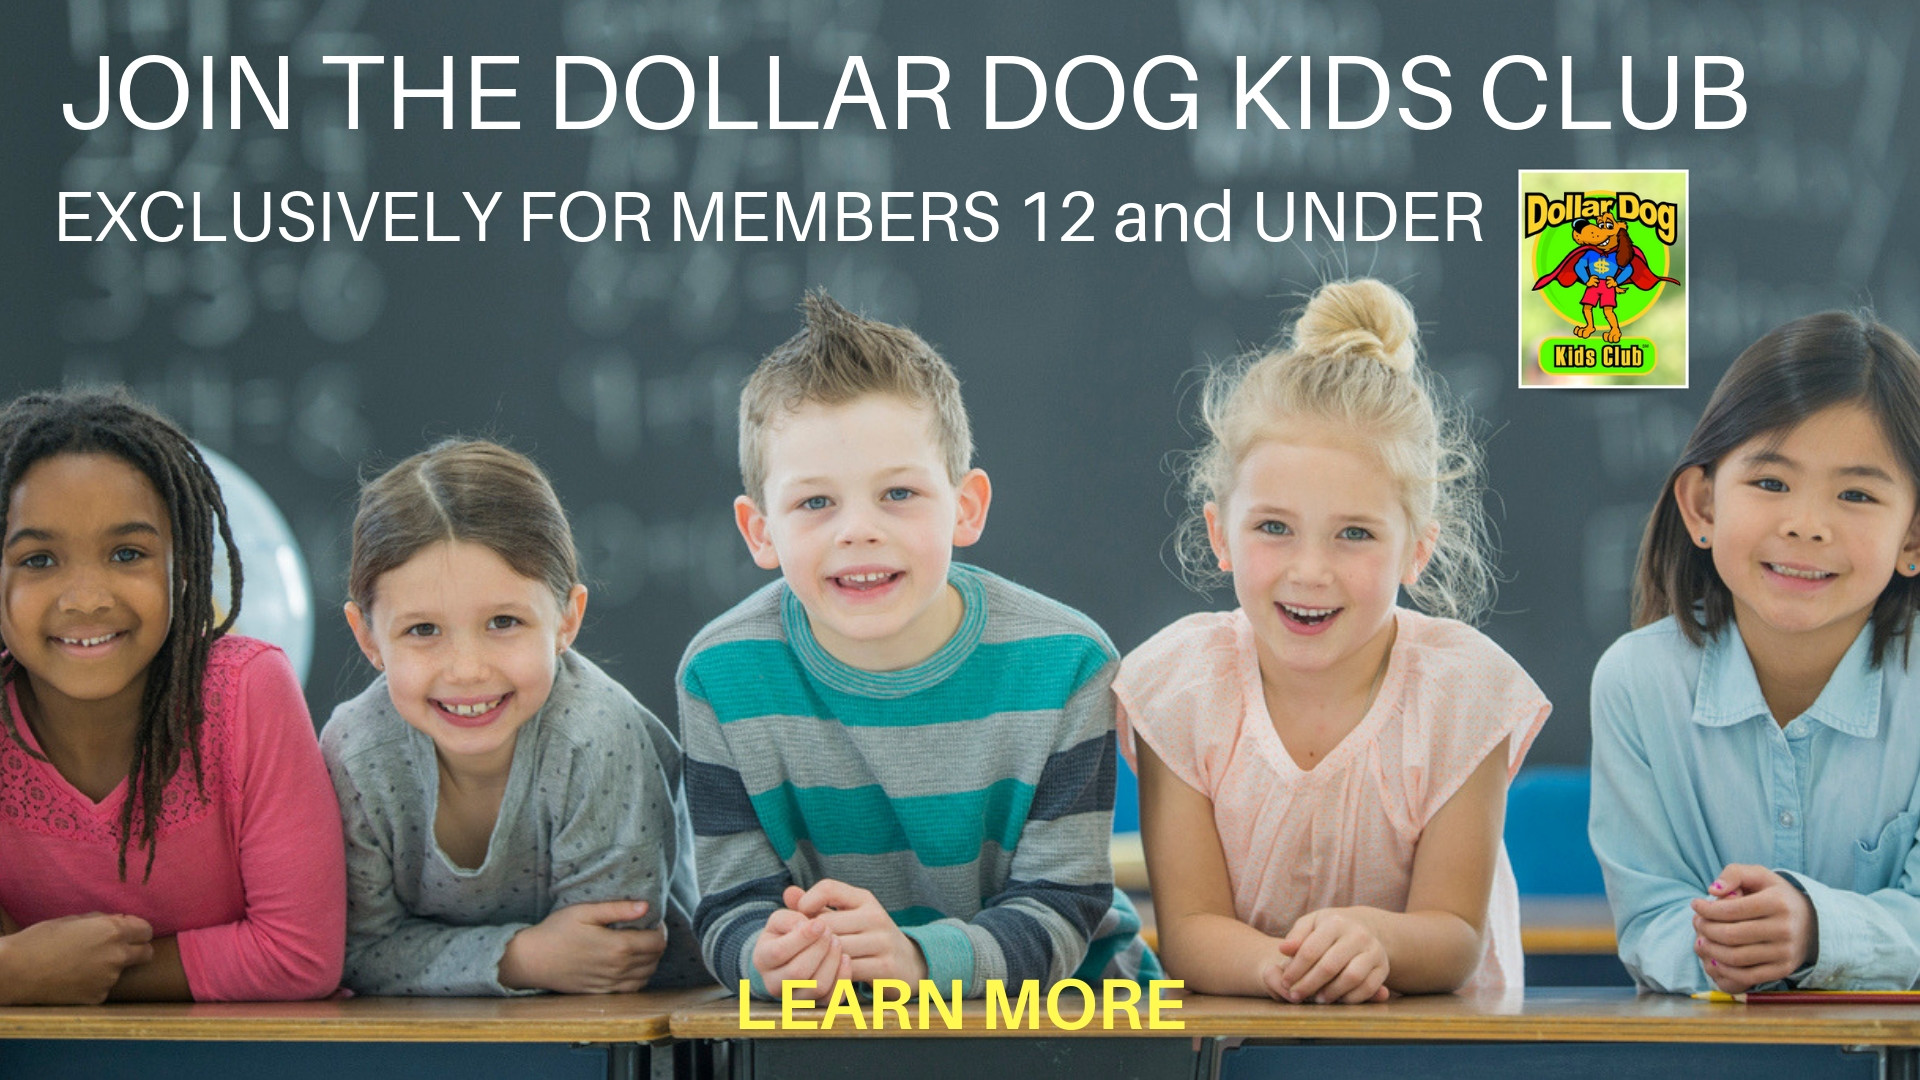 DOLLAR DOGS KIDS CLUB